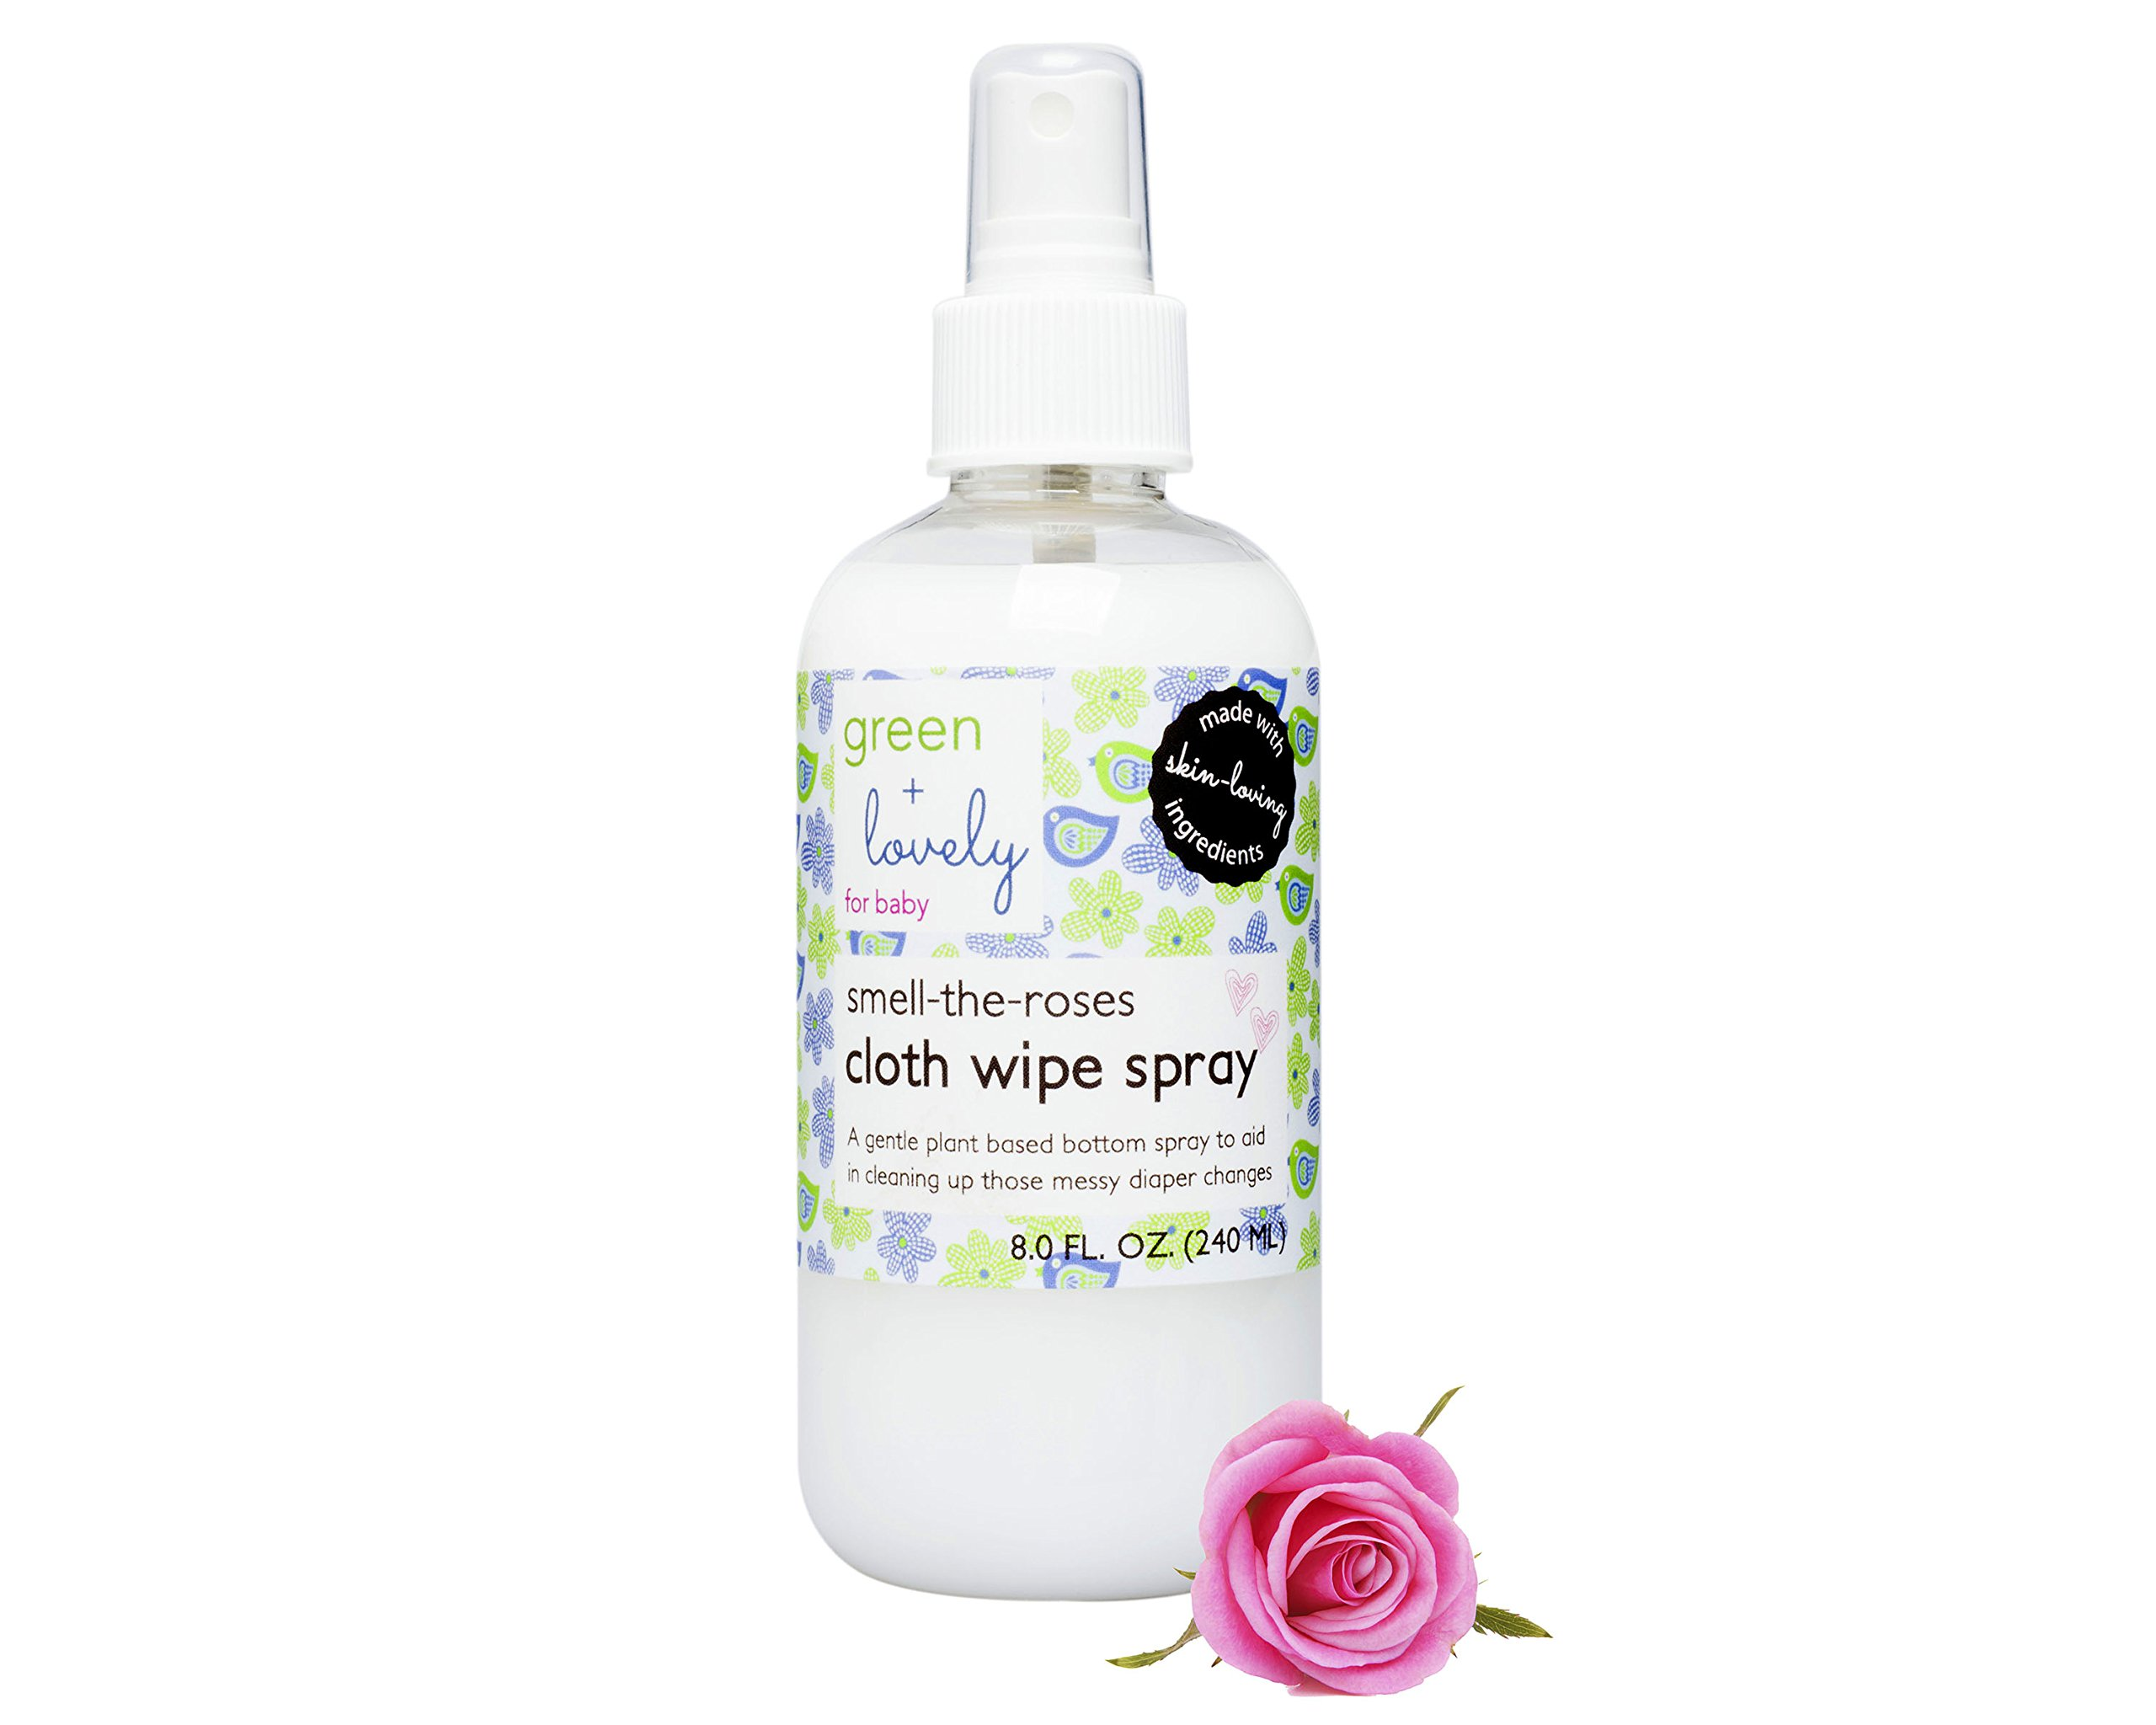 Smell the Roses Cloth Wipe Spray, 8 fl. oz. - Plant-based Baby Bottom Wash and Cleaner made with All-Natural and Organic Ingredients by Green and Lovely